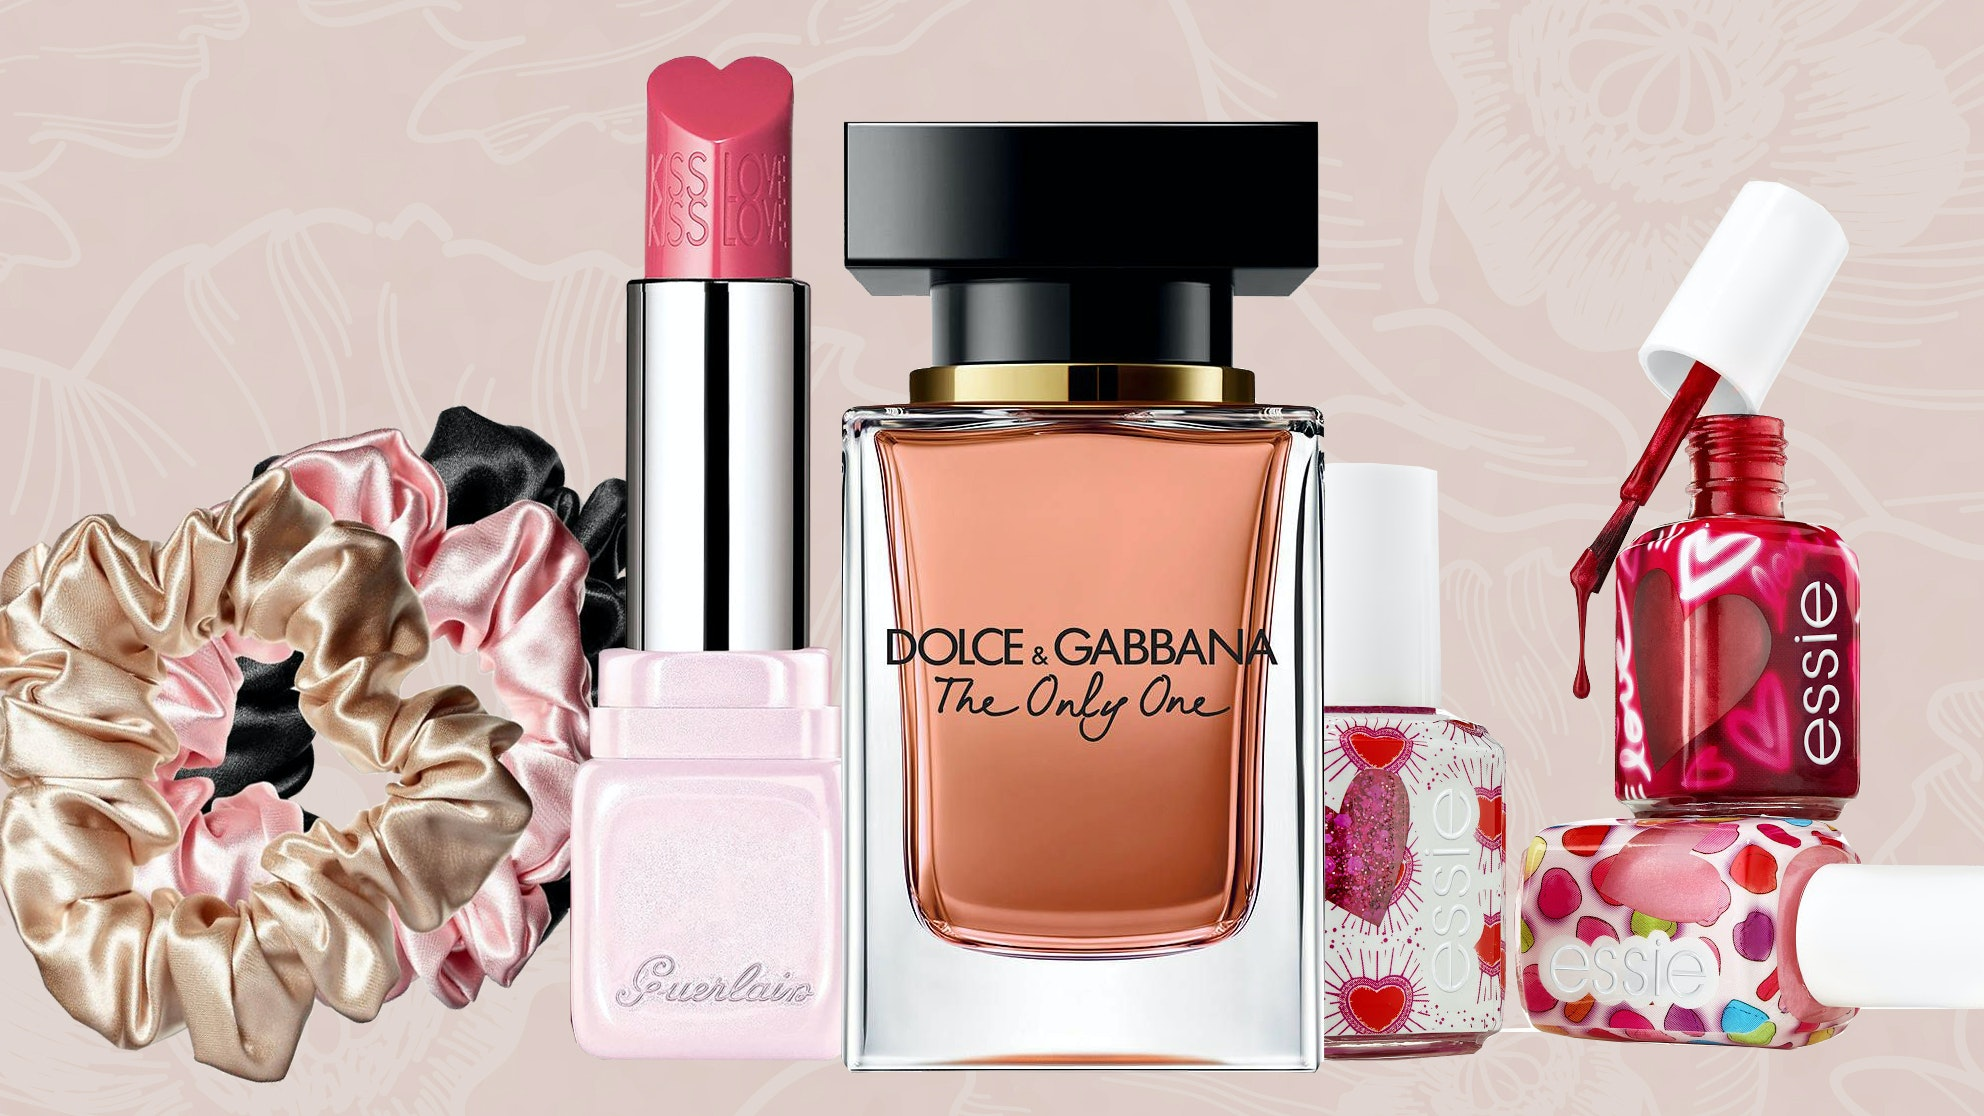 7 Gorgeous Beauty Gifts to Give Your Girlfriends This Valentine's Day